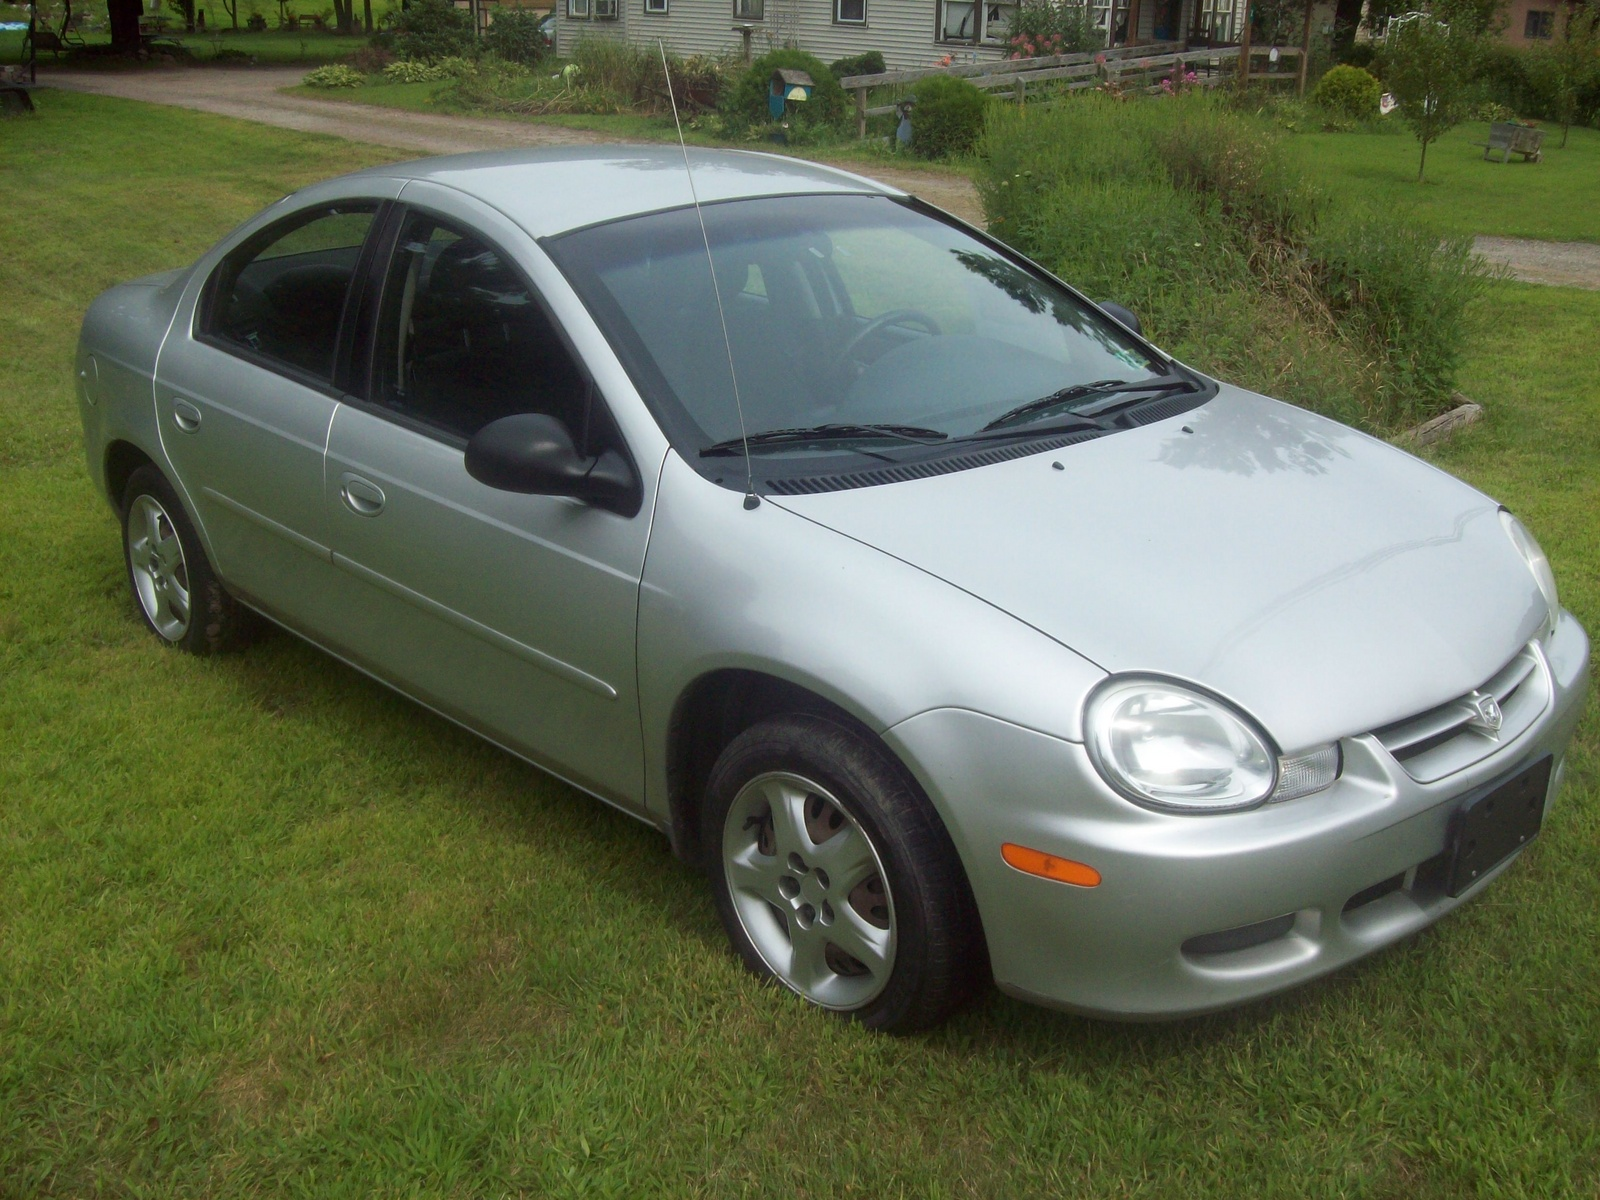 2002 dodge neon exterior pictures cargurus. Black Bedroom Furniture Sets. Home Design Ideas